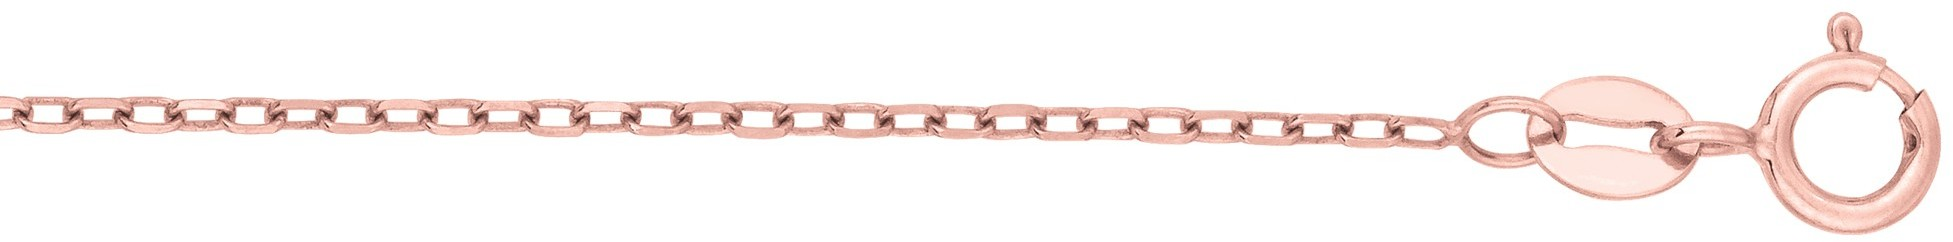 "18"" 14K Rose Gold 1.3mm (0.05"") Polished Diamond Cut Faceted Cable Link Chain w/ Spring Ring Clasp - DISCONTINUED"